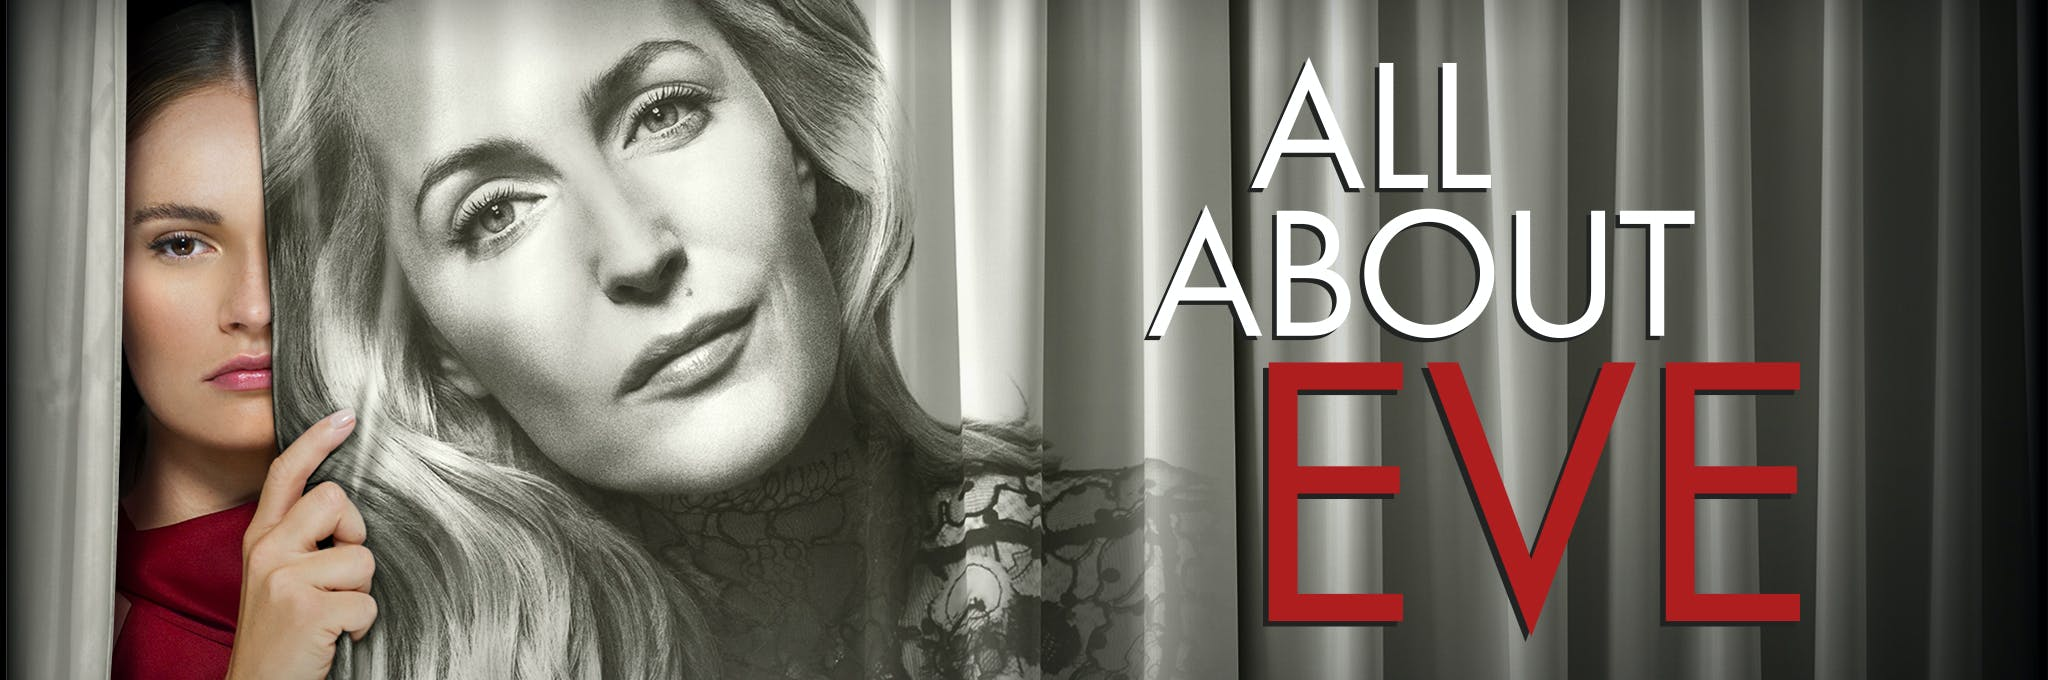 All About Eve Logo